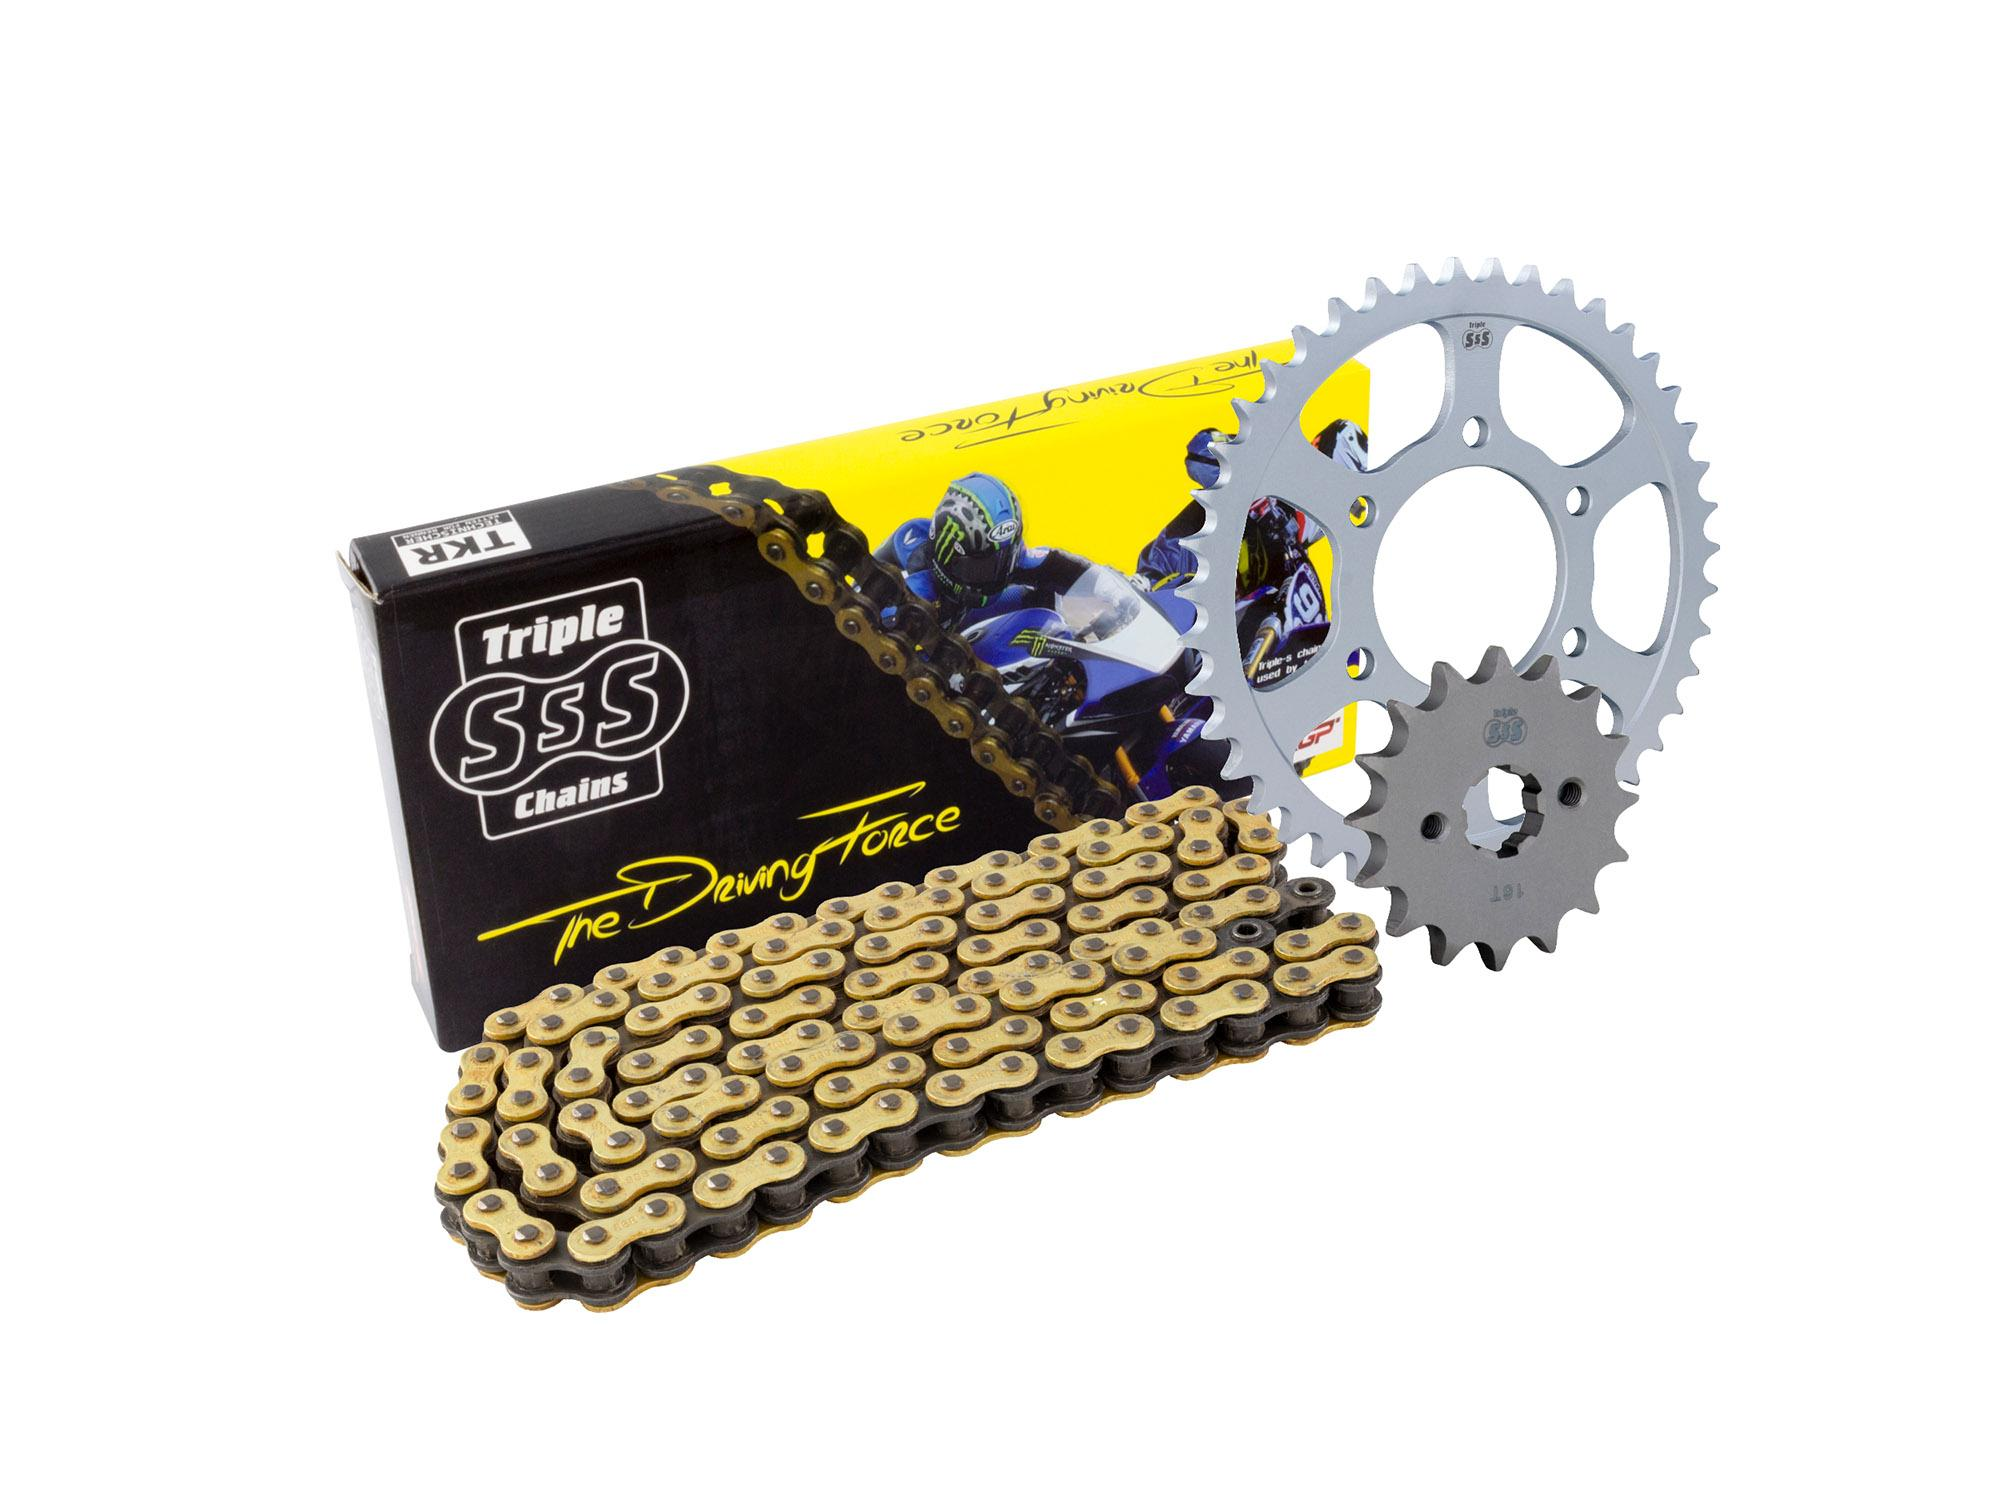 Yamaha WXJR1200 95-98 Chain & Sprocket Kit: 17T Front, 38T Rear, HD O-Ring Gold Chain 530H 110 Link